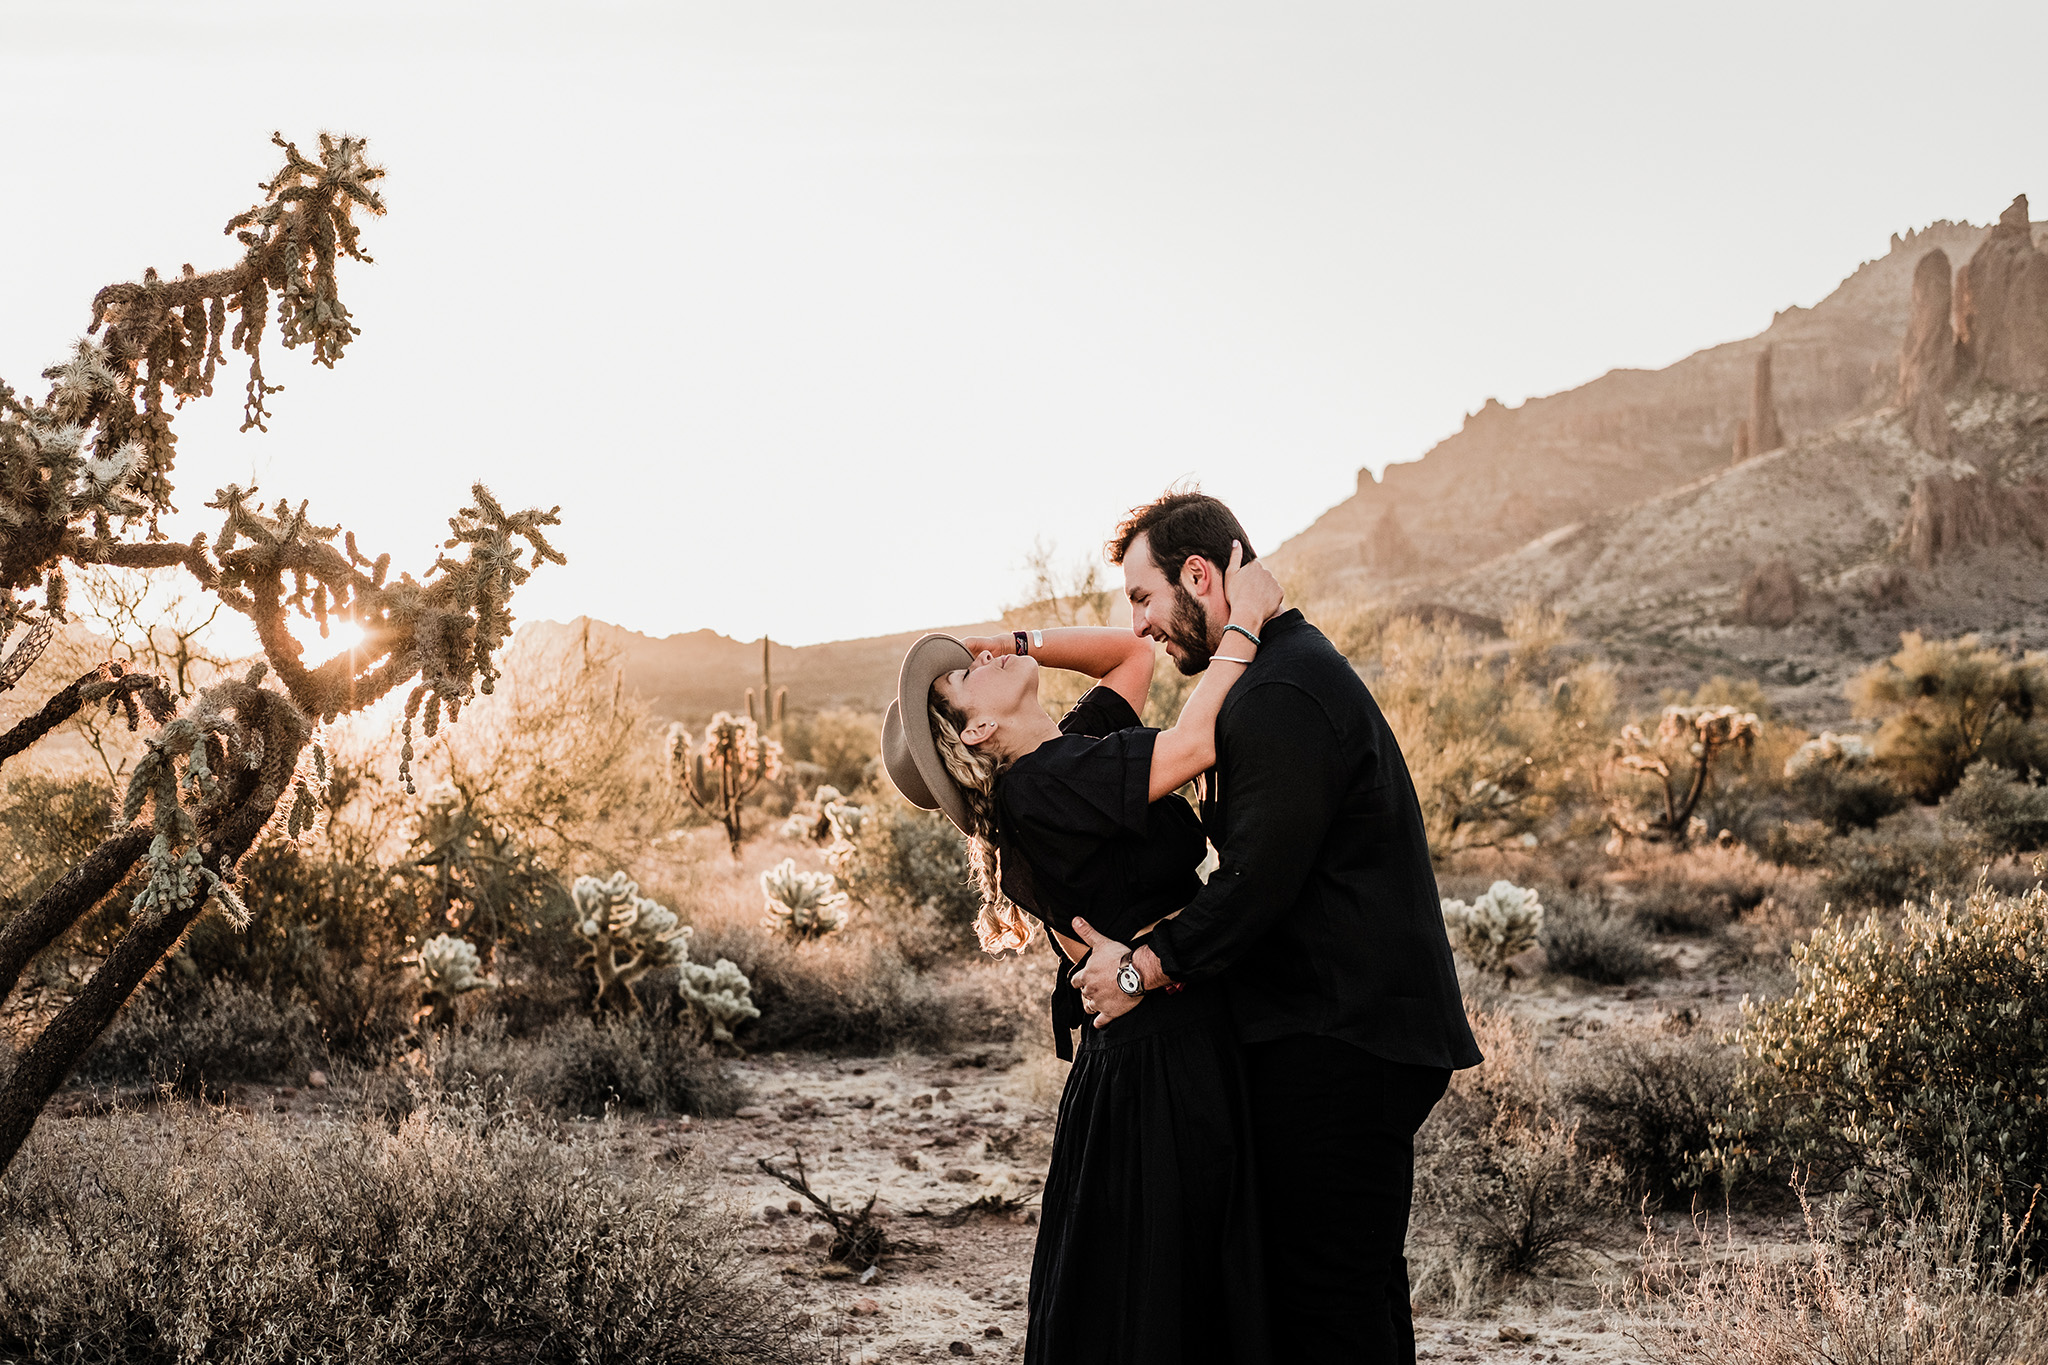 Arizona-Desert-Intimate-Wedding-Photographer-Lost-Dutchman-State-Park (27).jpg